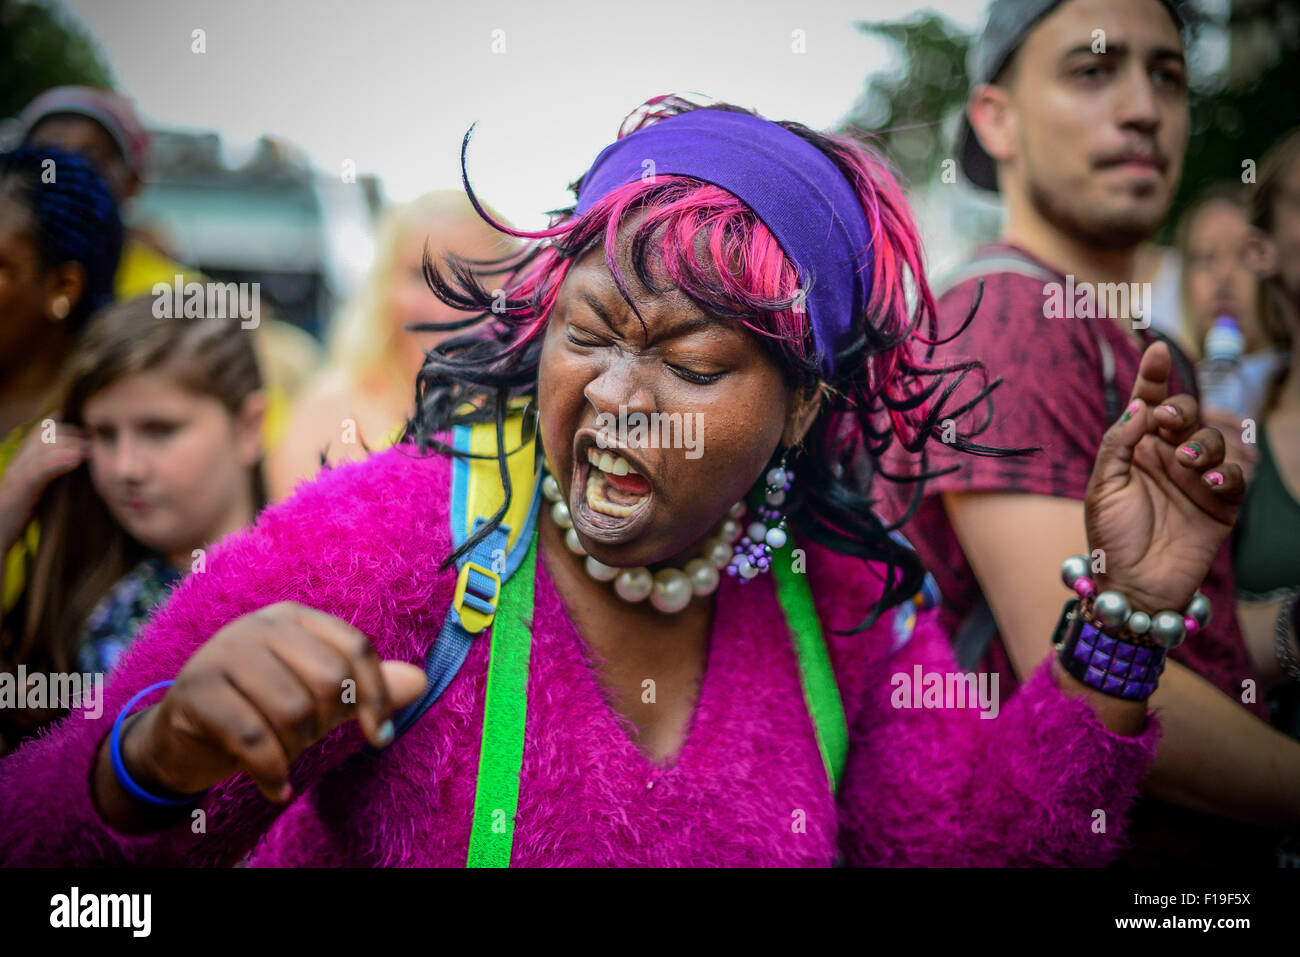 London, UK. 30th August, 2015. Hundreds of youngsters are taking part in a huge procession of Calypso dancers and - Stock Image